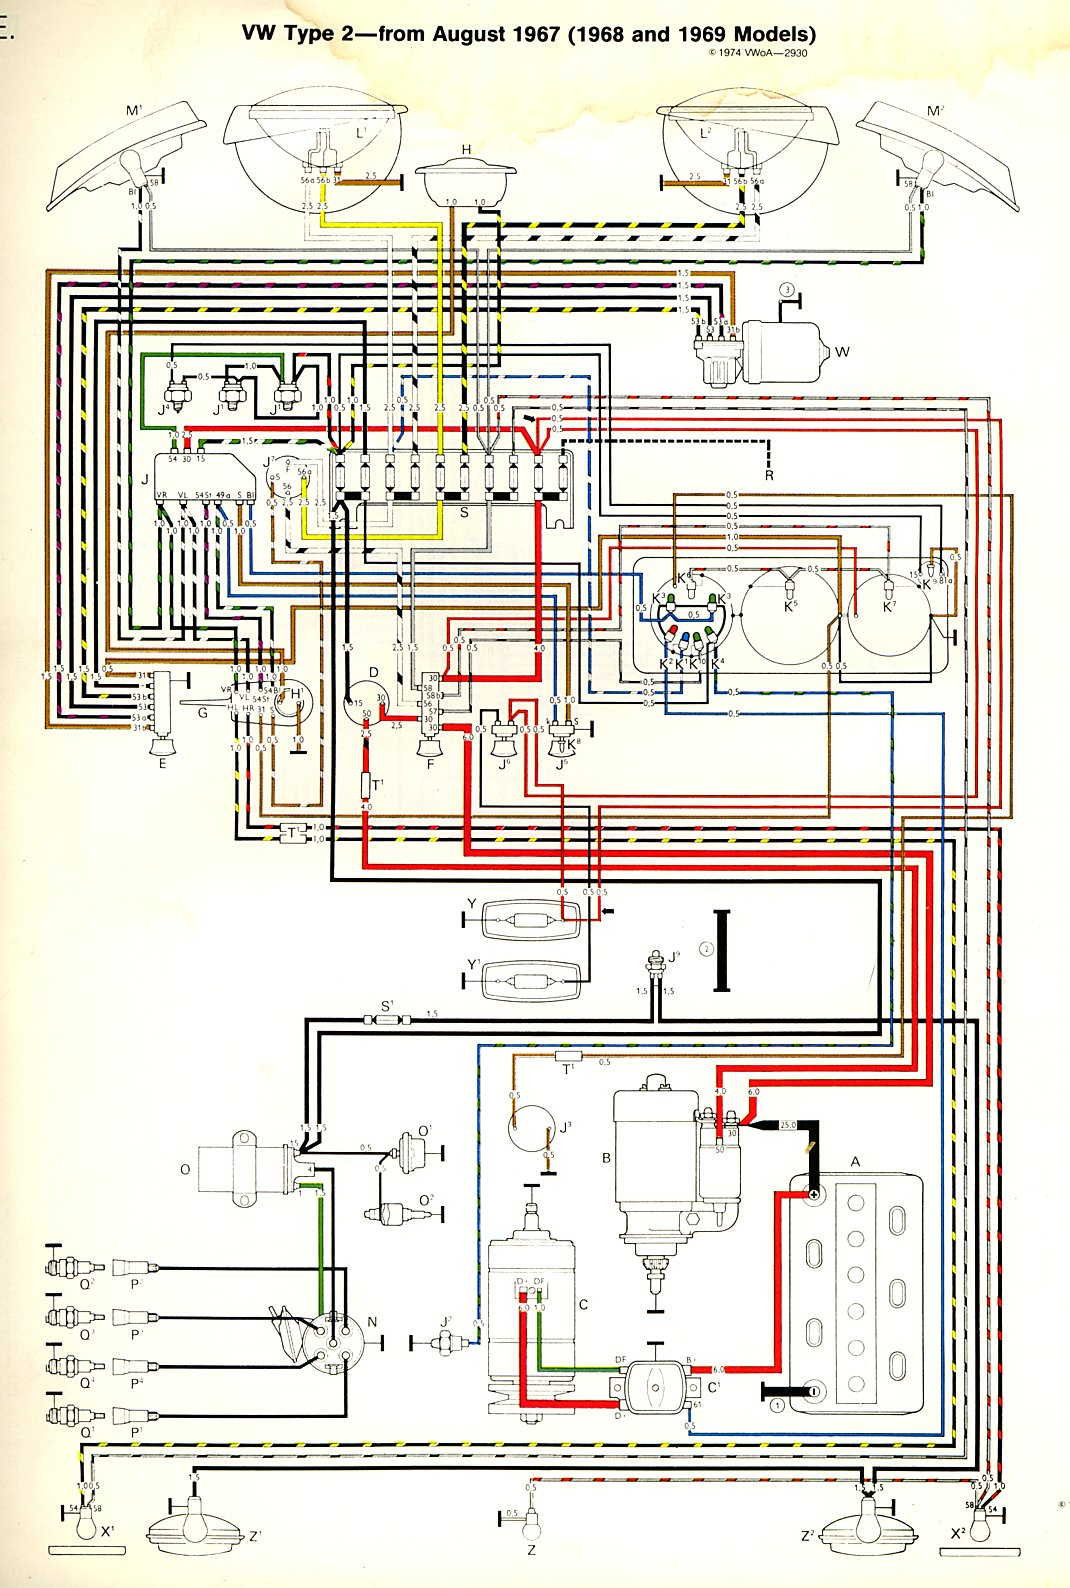 baybus_6869a 1968 69 bus wiring diagram thegoldenbug com 1960 vw bus wiring diagram at fashall.co